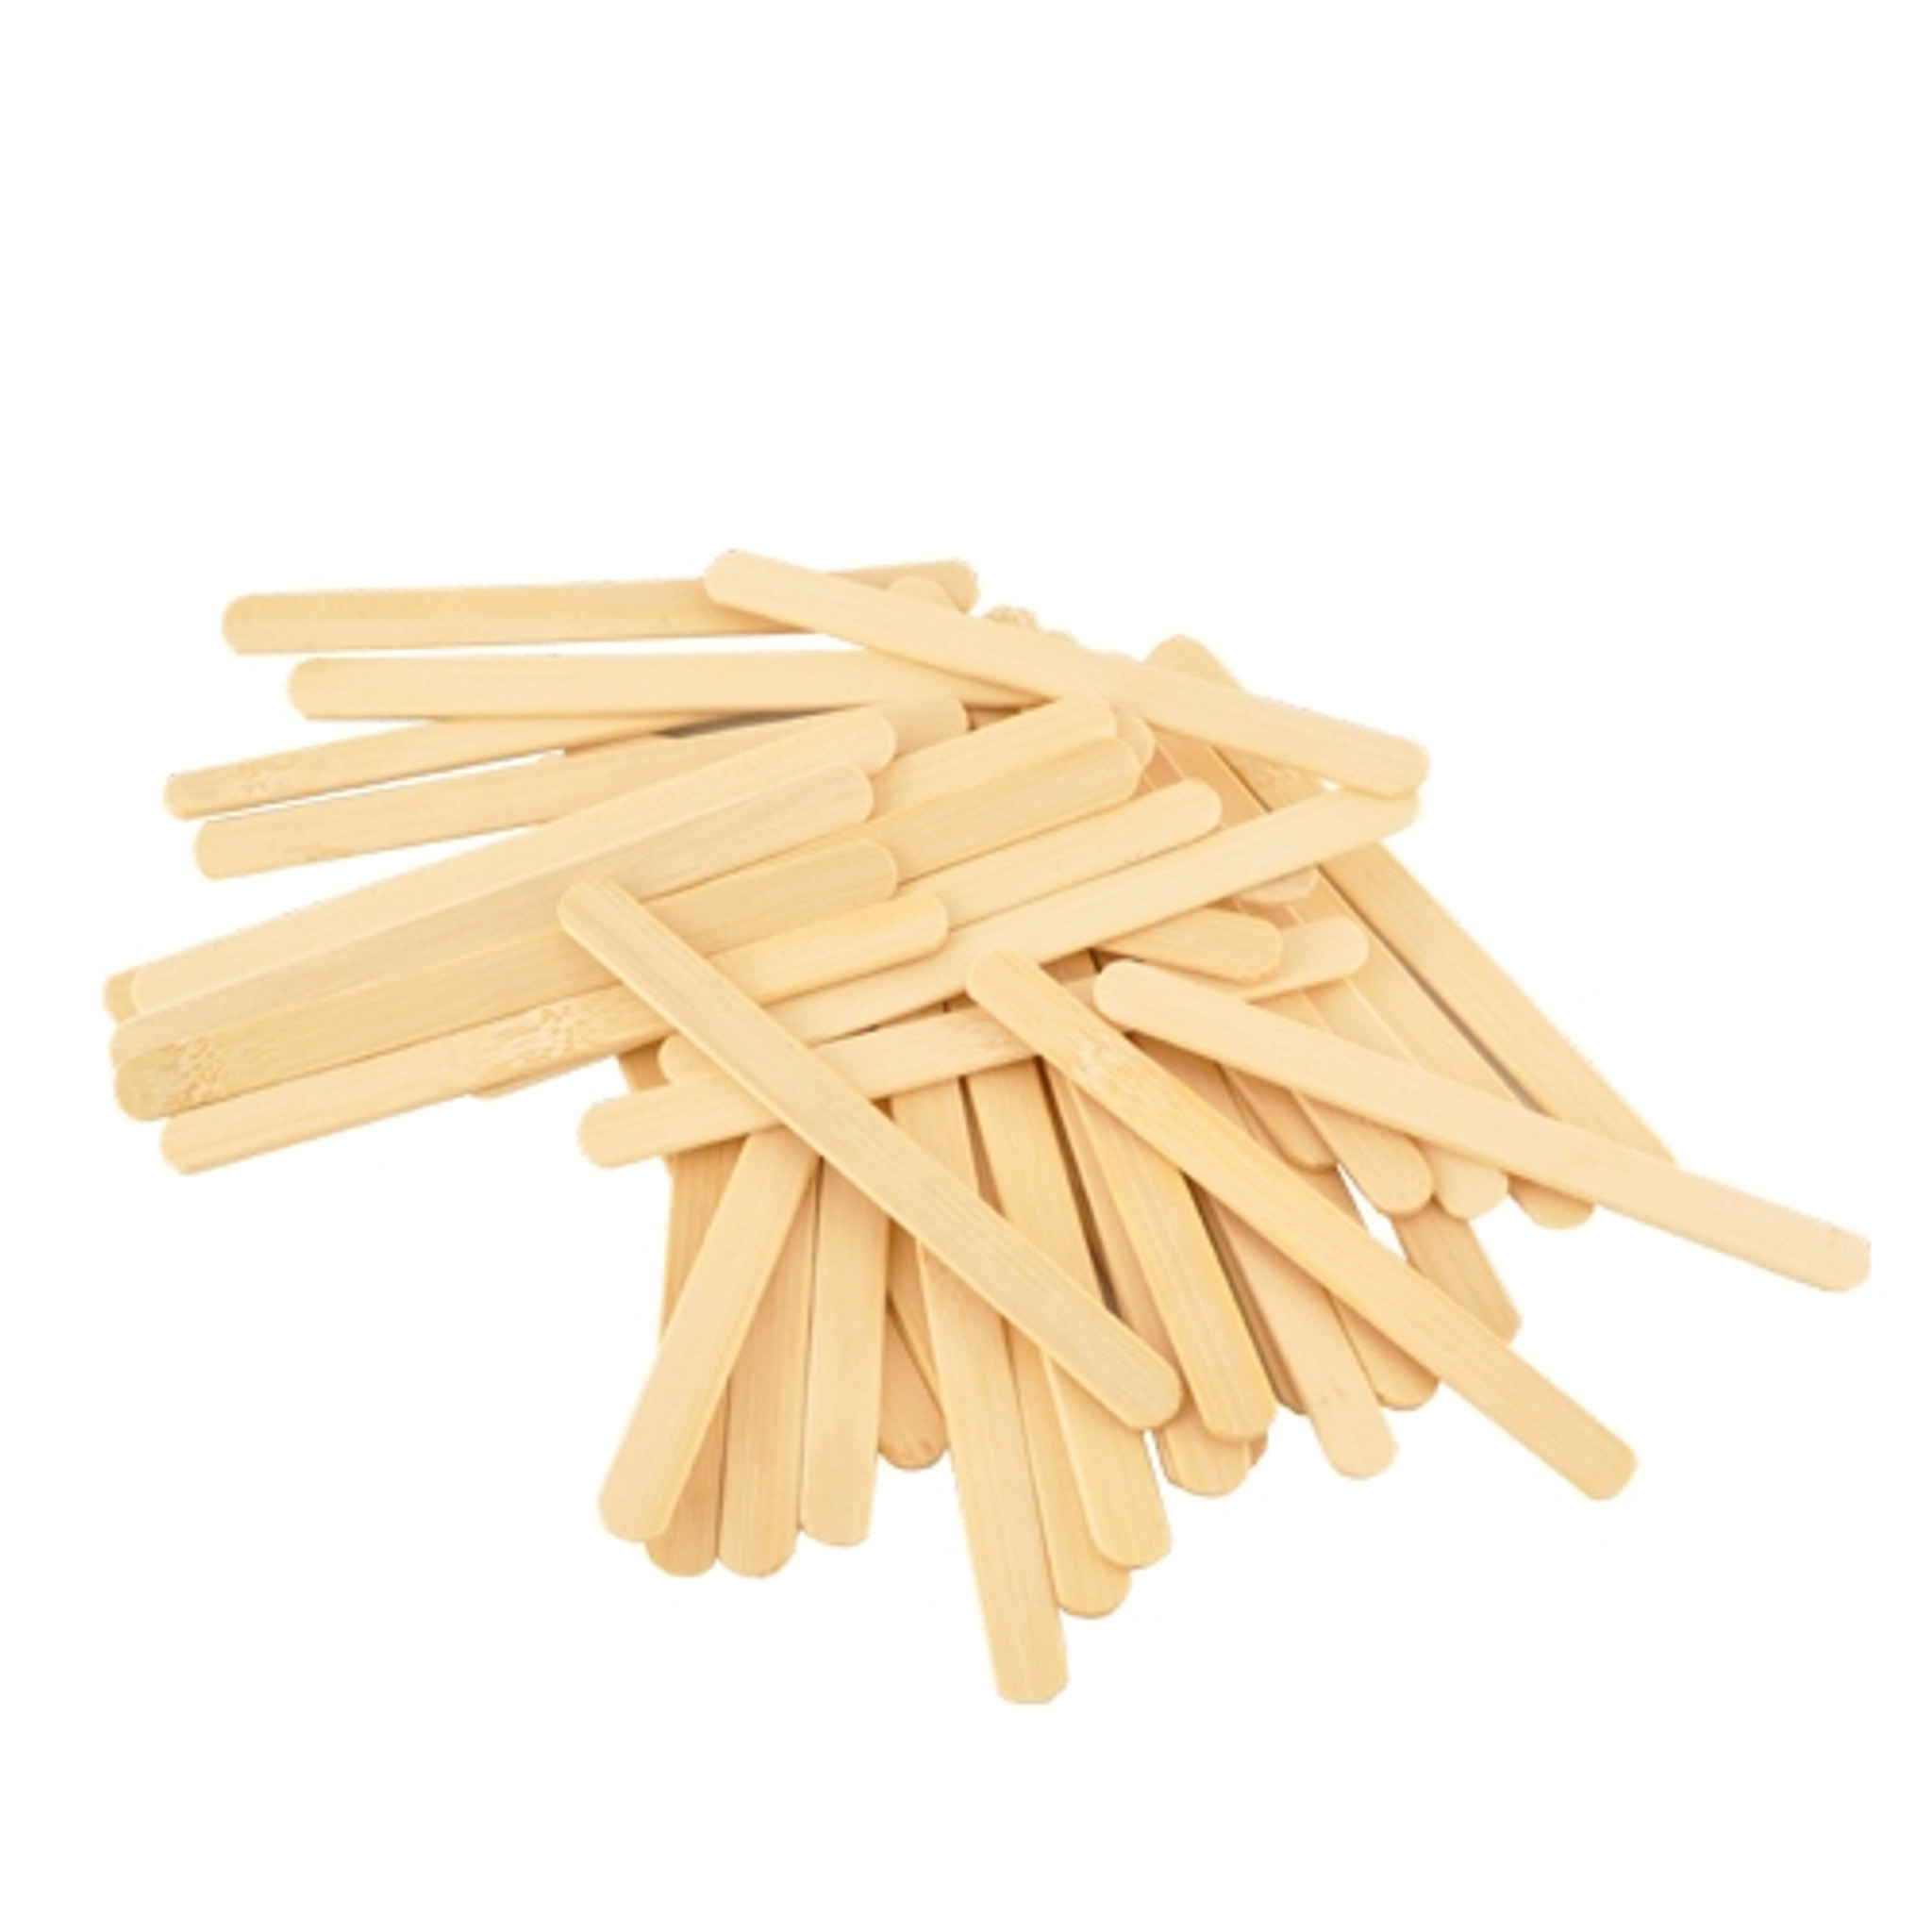 SALE- Set of 50 Reusable Bamboo Sticks for the Freezycup Ice Pop Mold